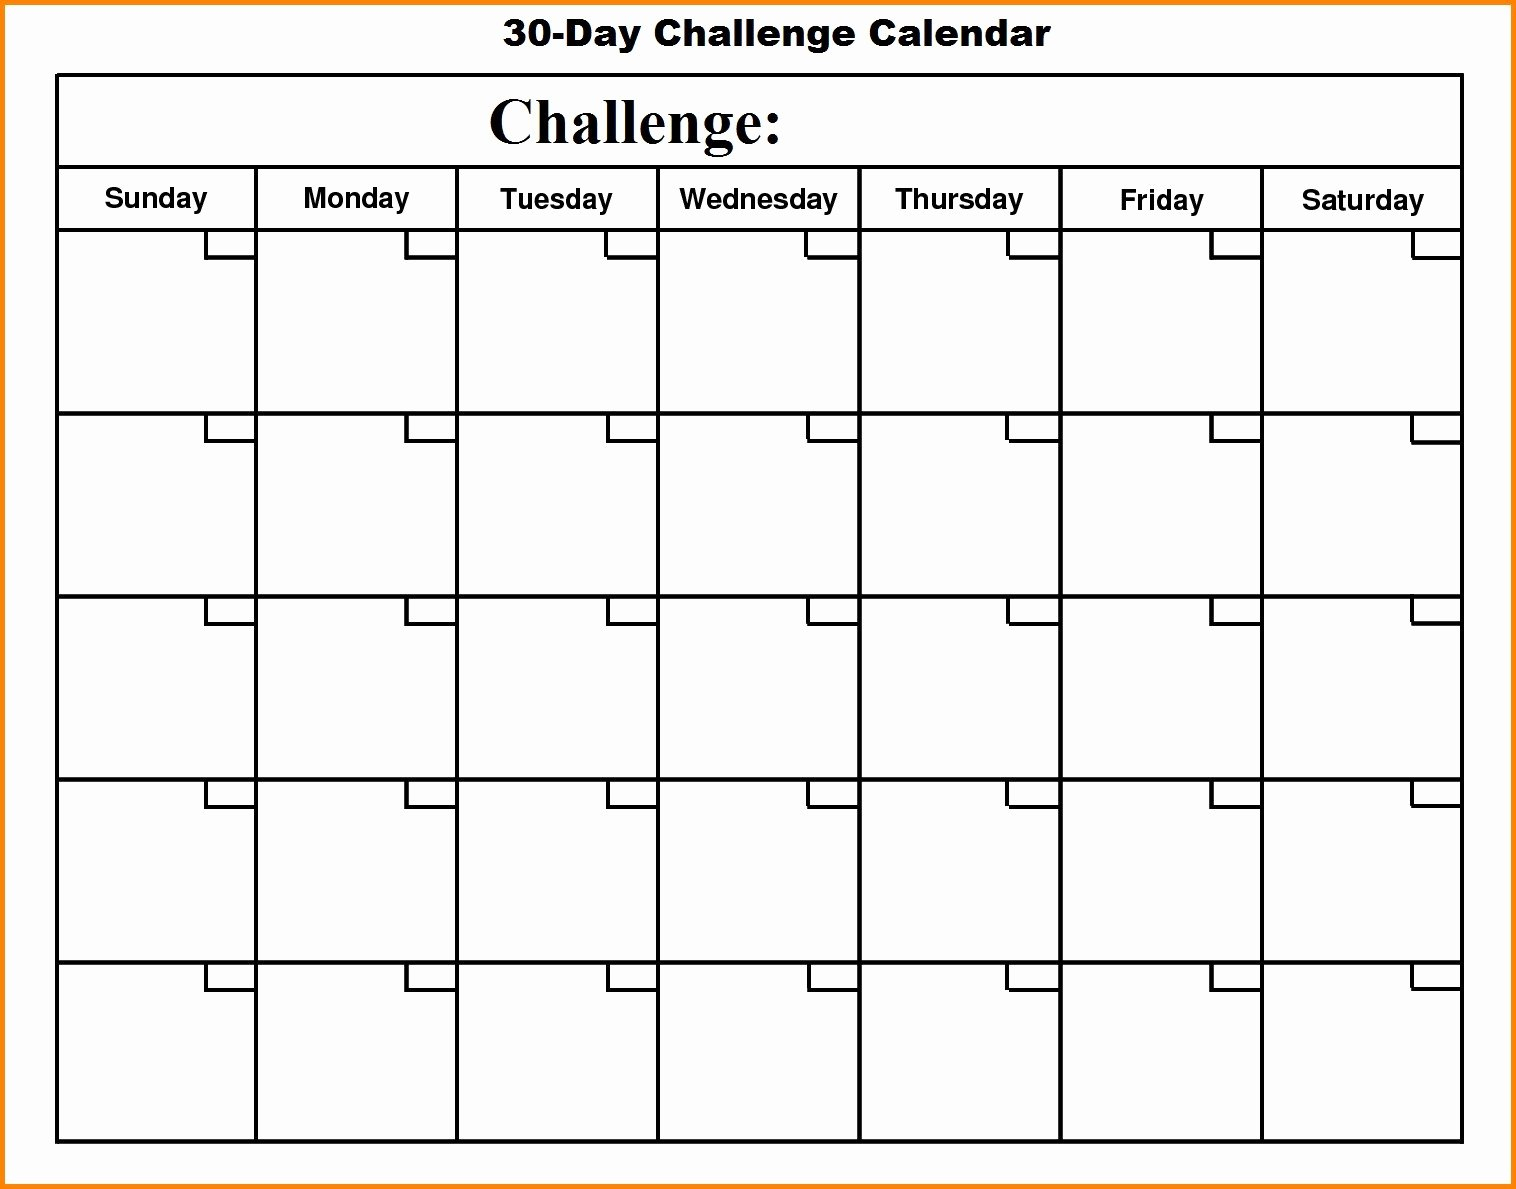 30 Day Calendar Template | Mathosproject regarding 60 Days Challenge Template Calender